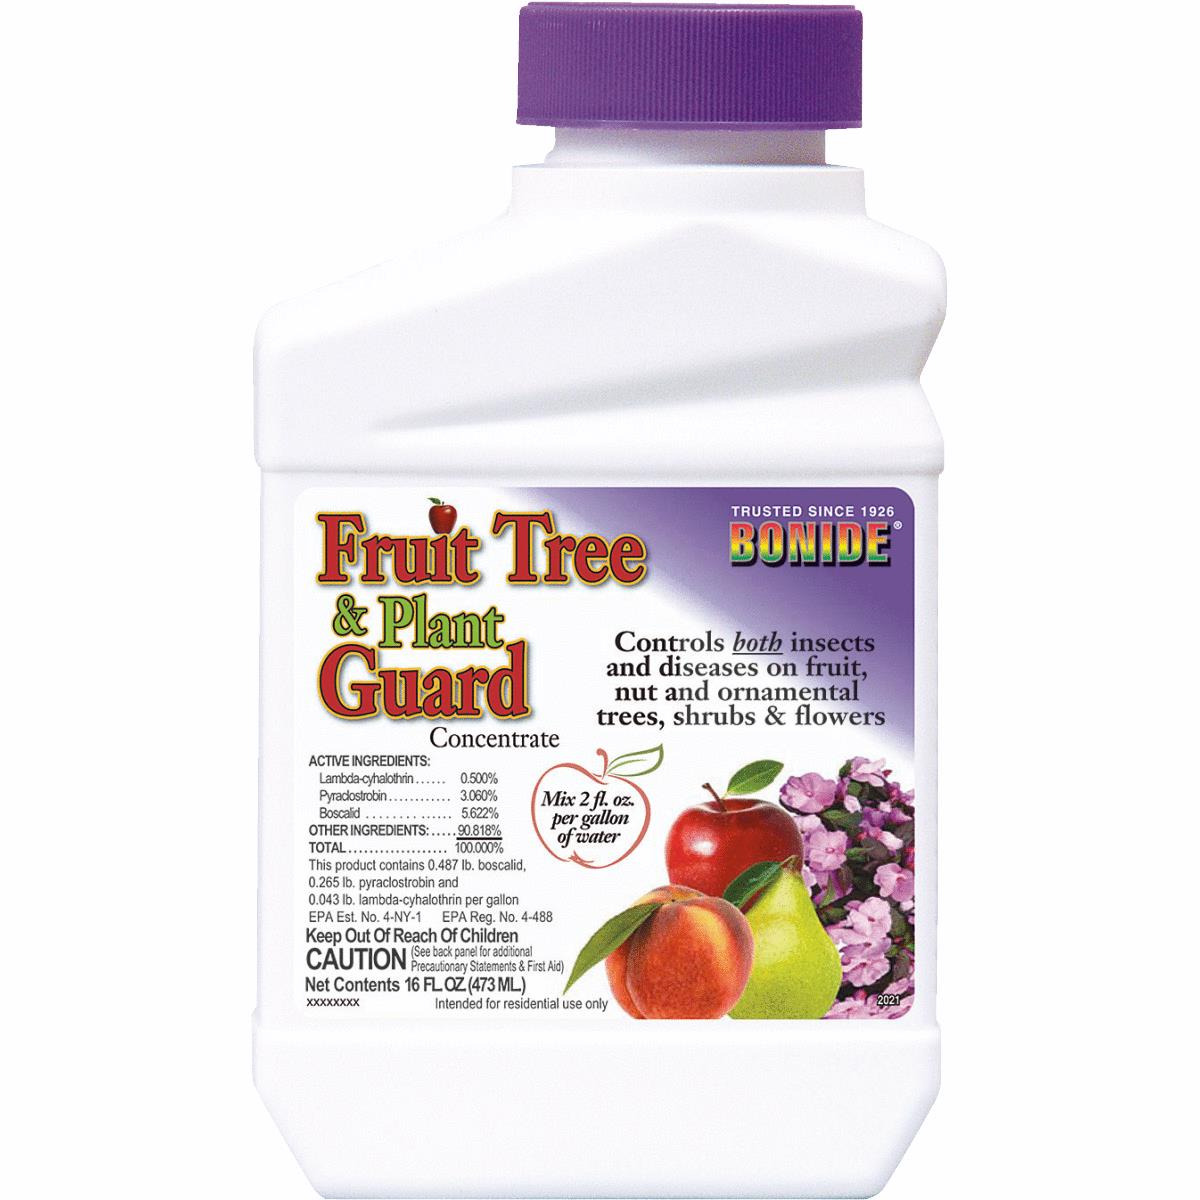 Bonide Plant Guard Fruit Tree Insect Control